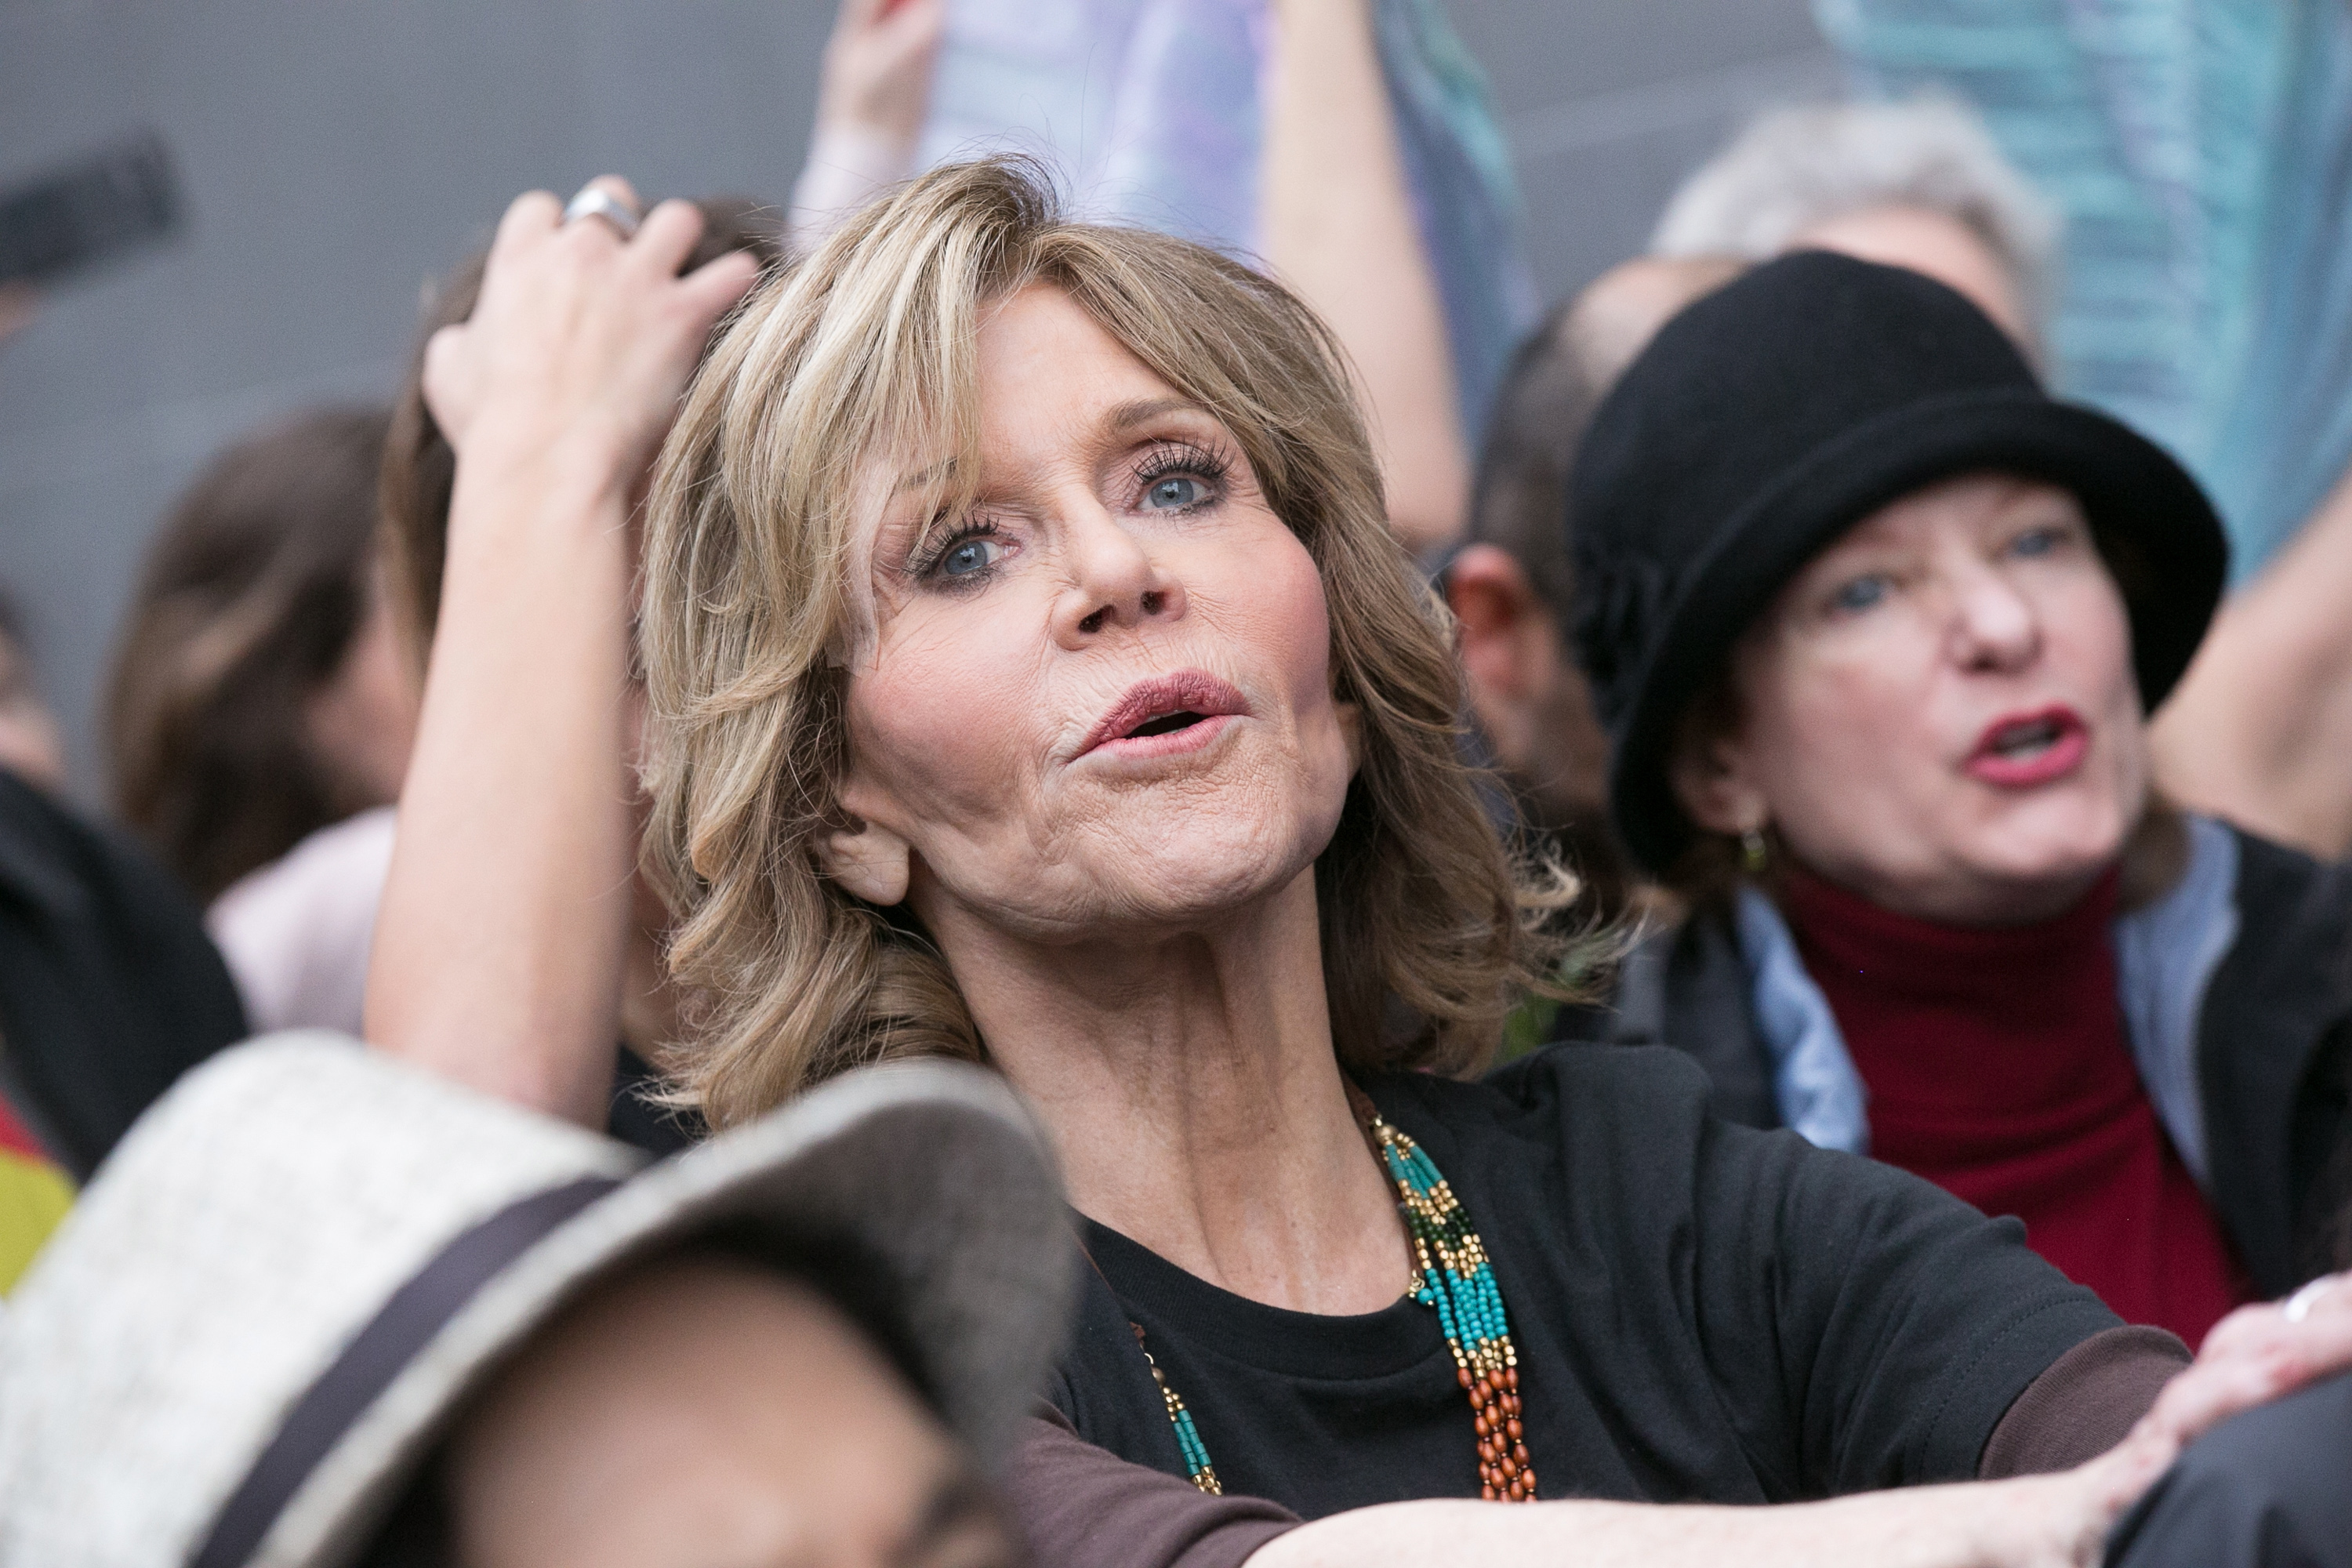 Jane Fonda attends the #BankExit Rally  in Los Angeles on Dec. 21.